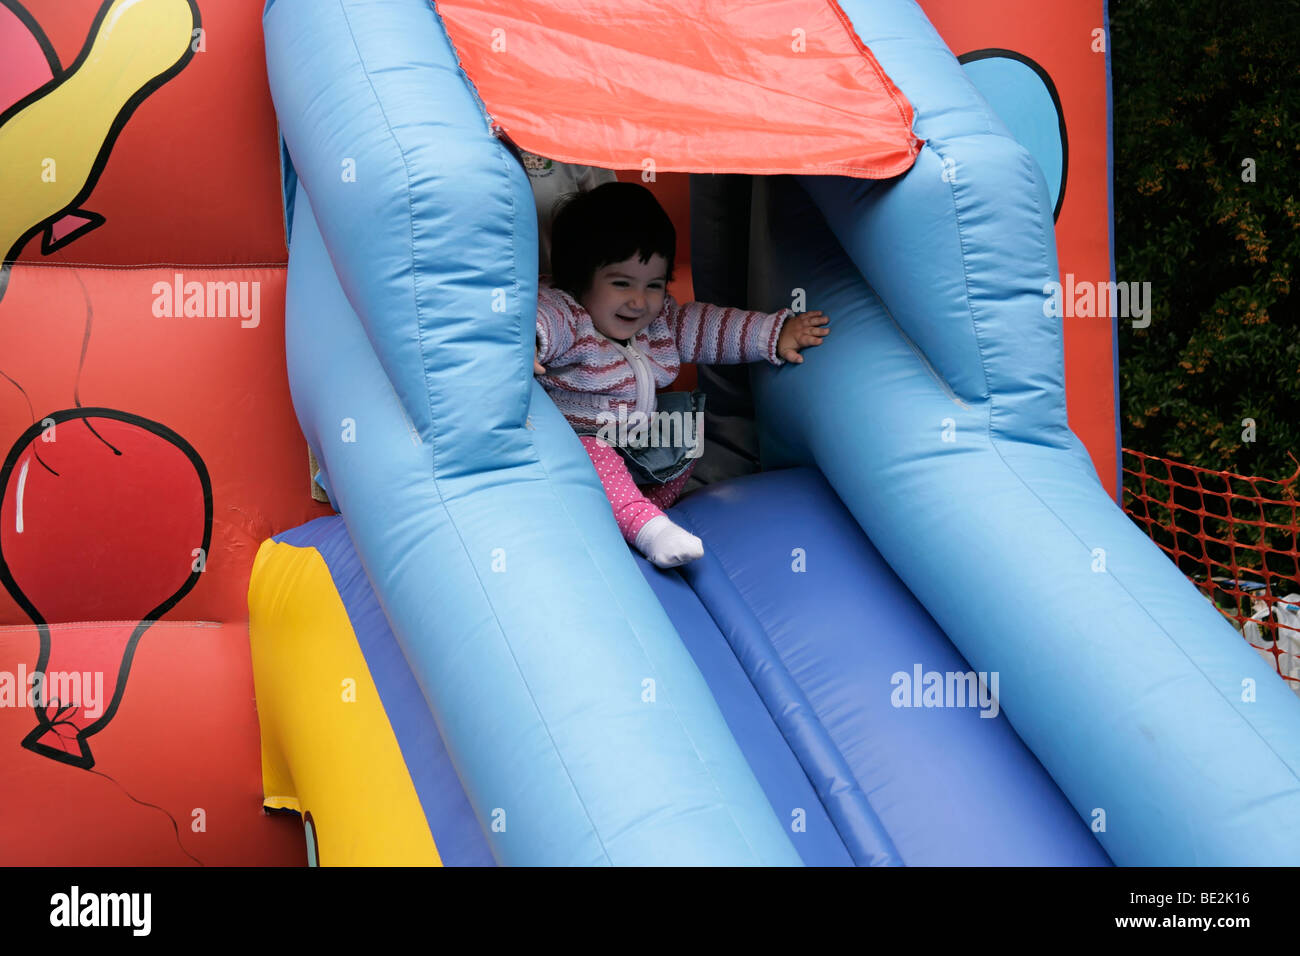 Toddler going down the slide of a bouncy castle, UK - Stock Image